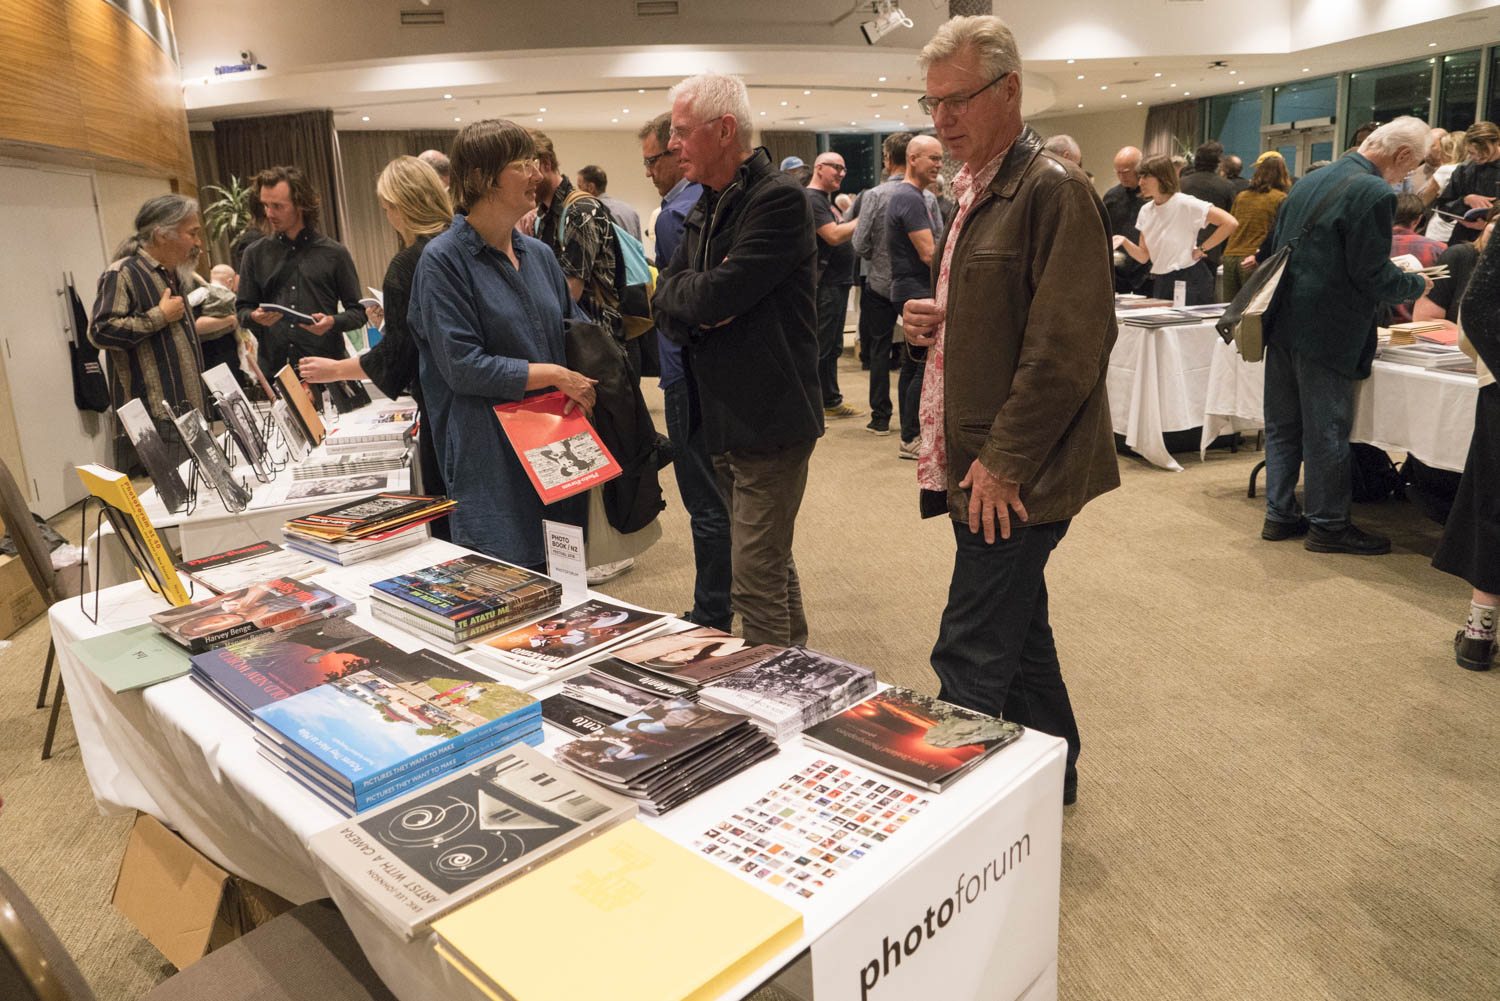 Geoffrey H. Short,  Photobook NZ Book fair 2018, Wellington.